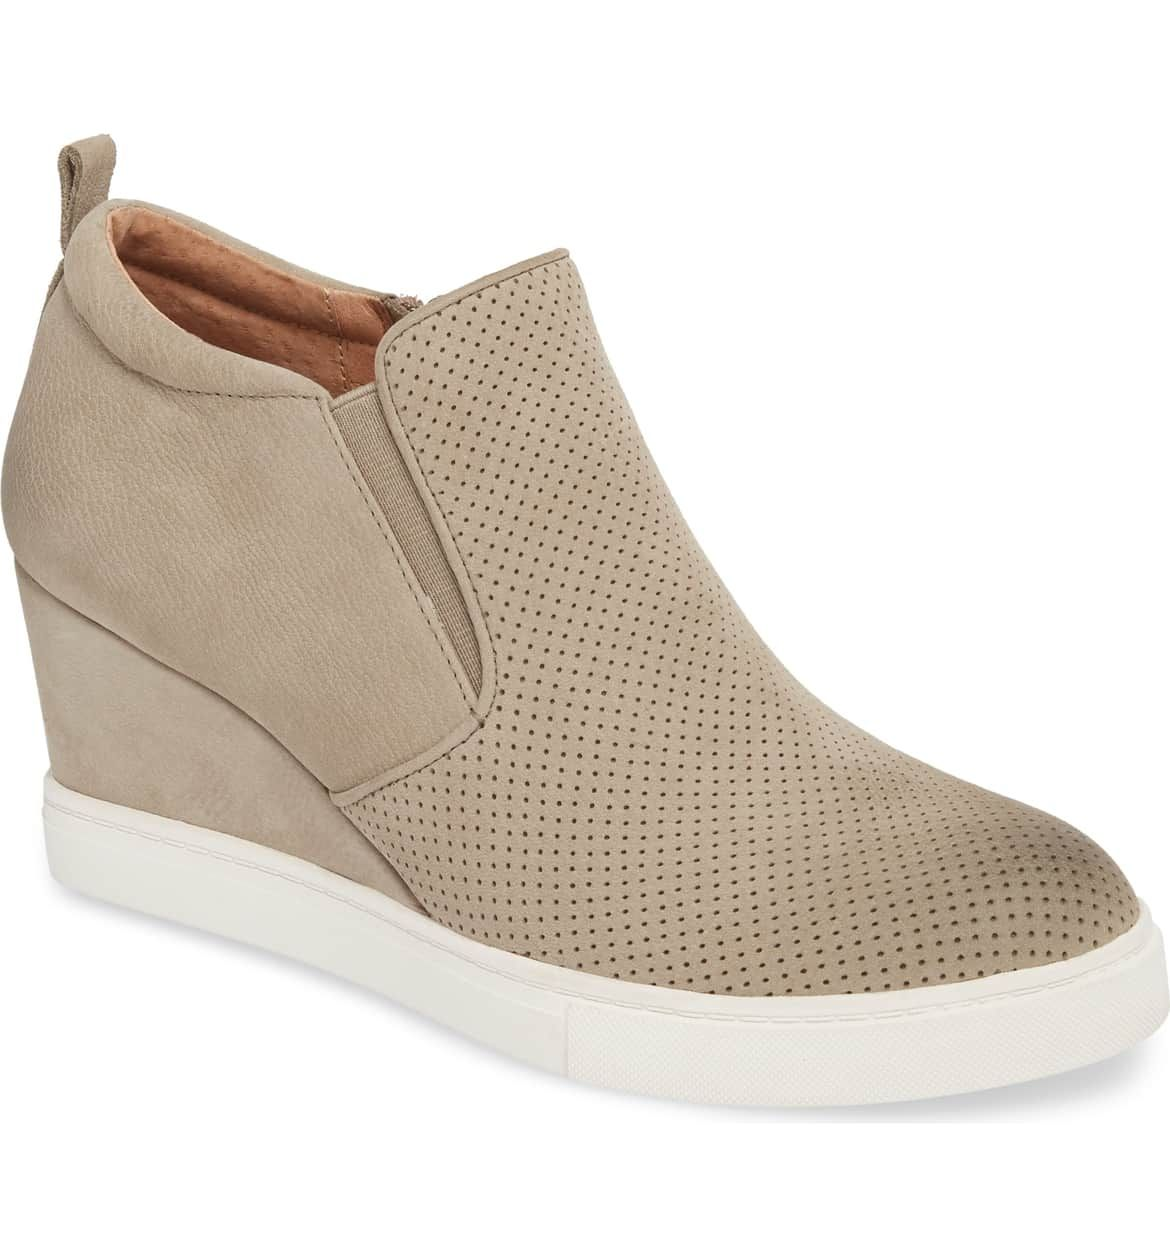 1afab42d1b5 Caslon Aiden Wedge Sneaker, Main, color, Taupe Perforated Leather ...